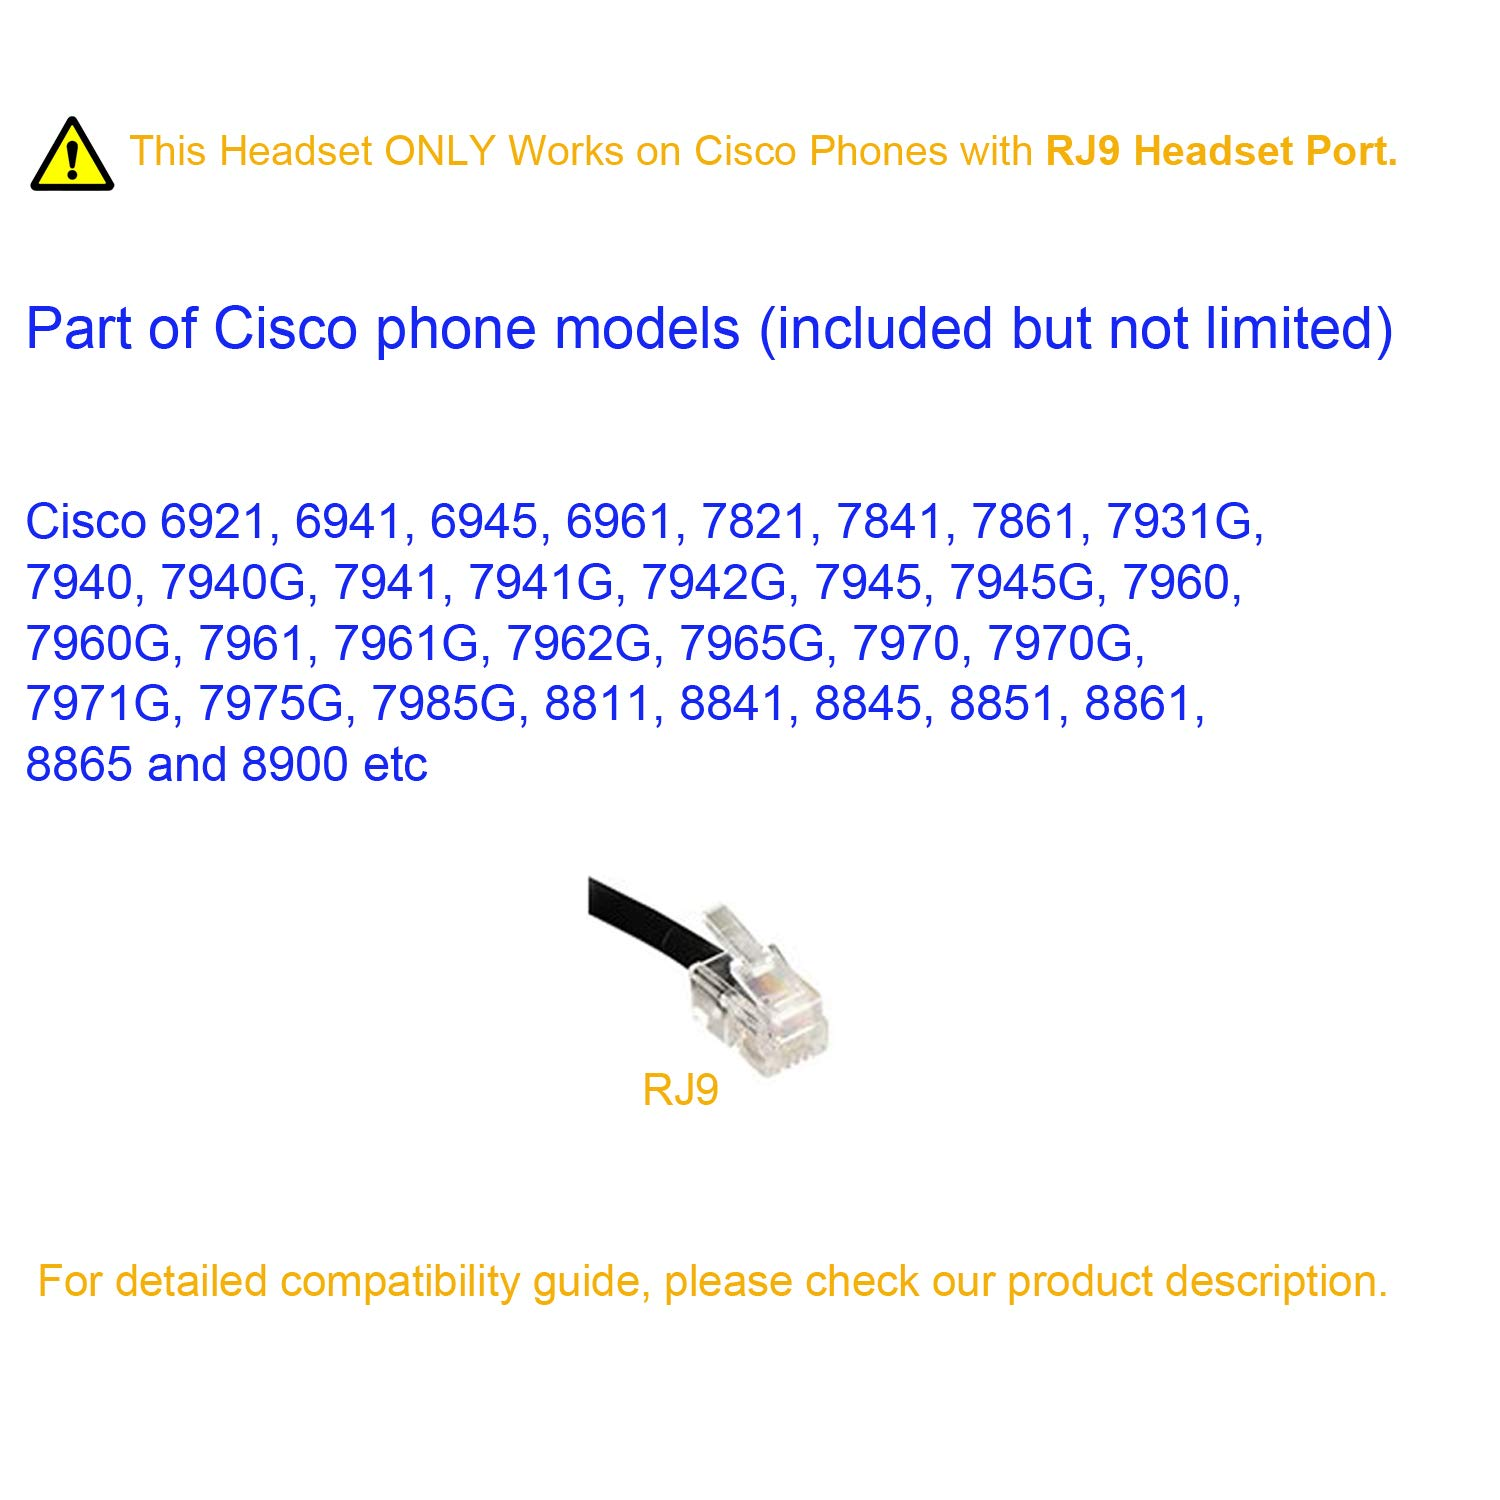 Cisco Rj9 Wiring Diagram Library 2008 Ford Taurus Limited Heatseat Fuse Box Amazoncom Headset Dual Ear Landline With Microphone For Ip Phone